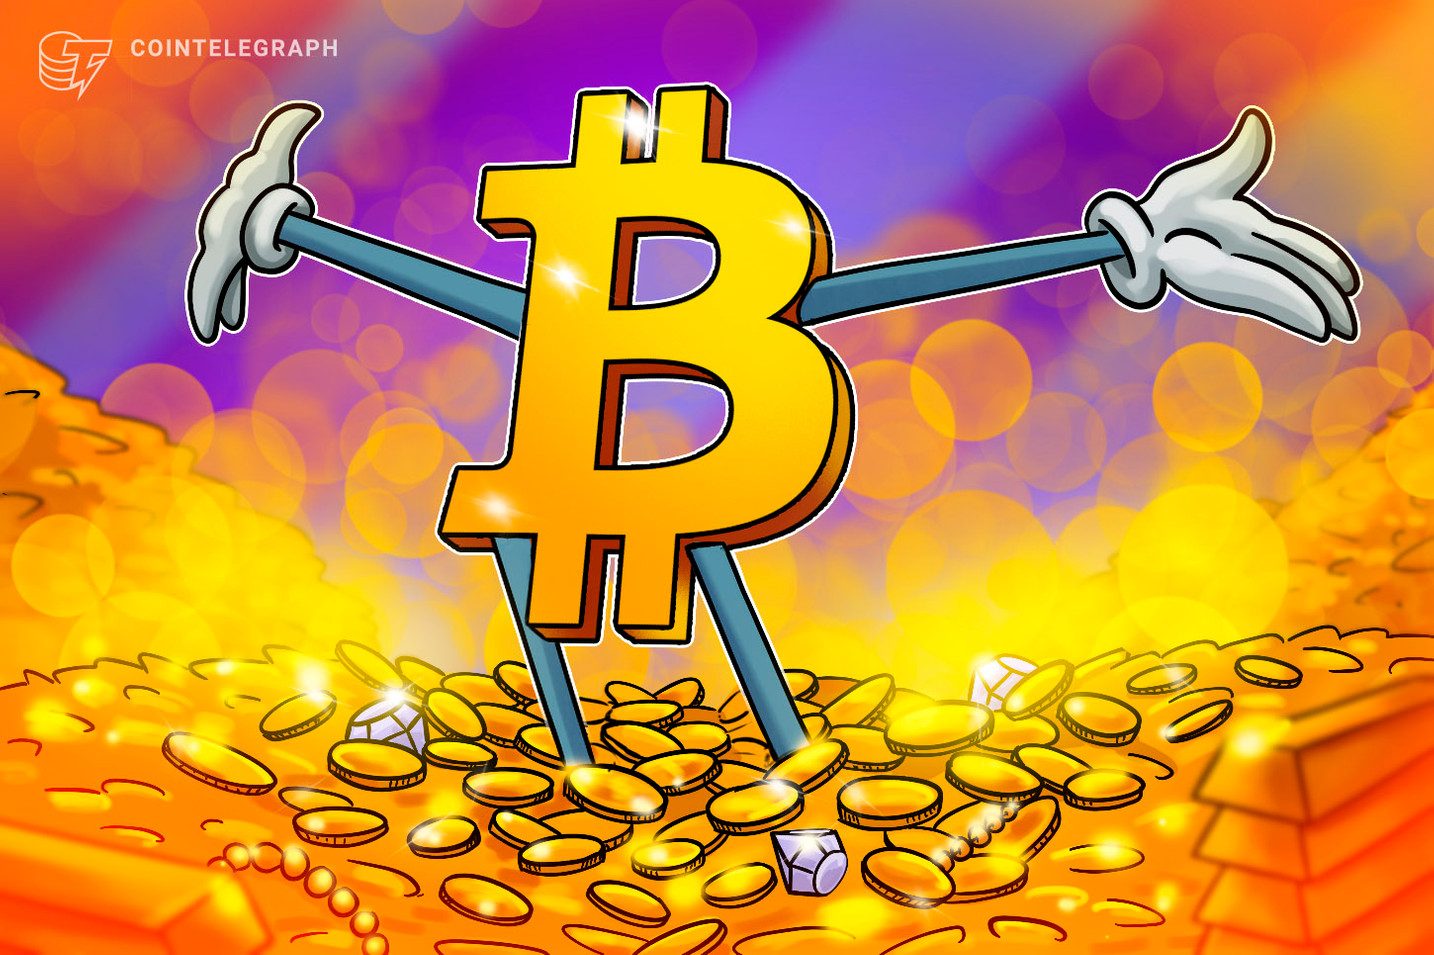 Bitcoin Price Nears $12K Again as Gold Correlation Hits Record